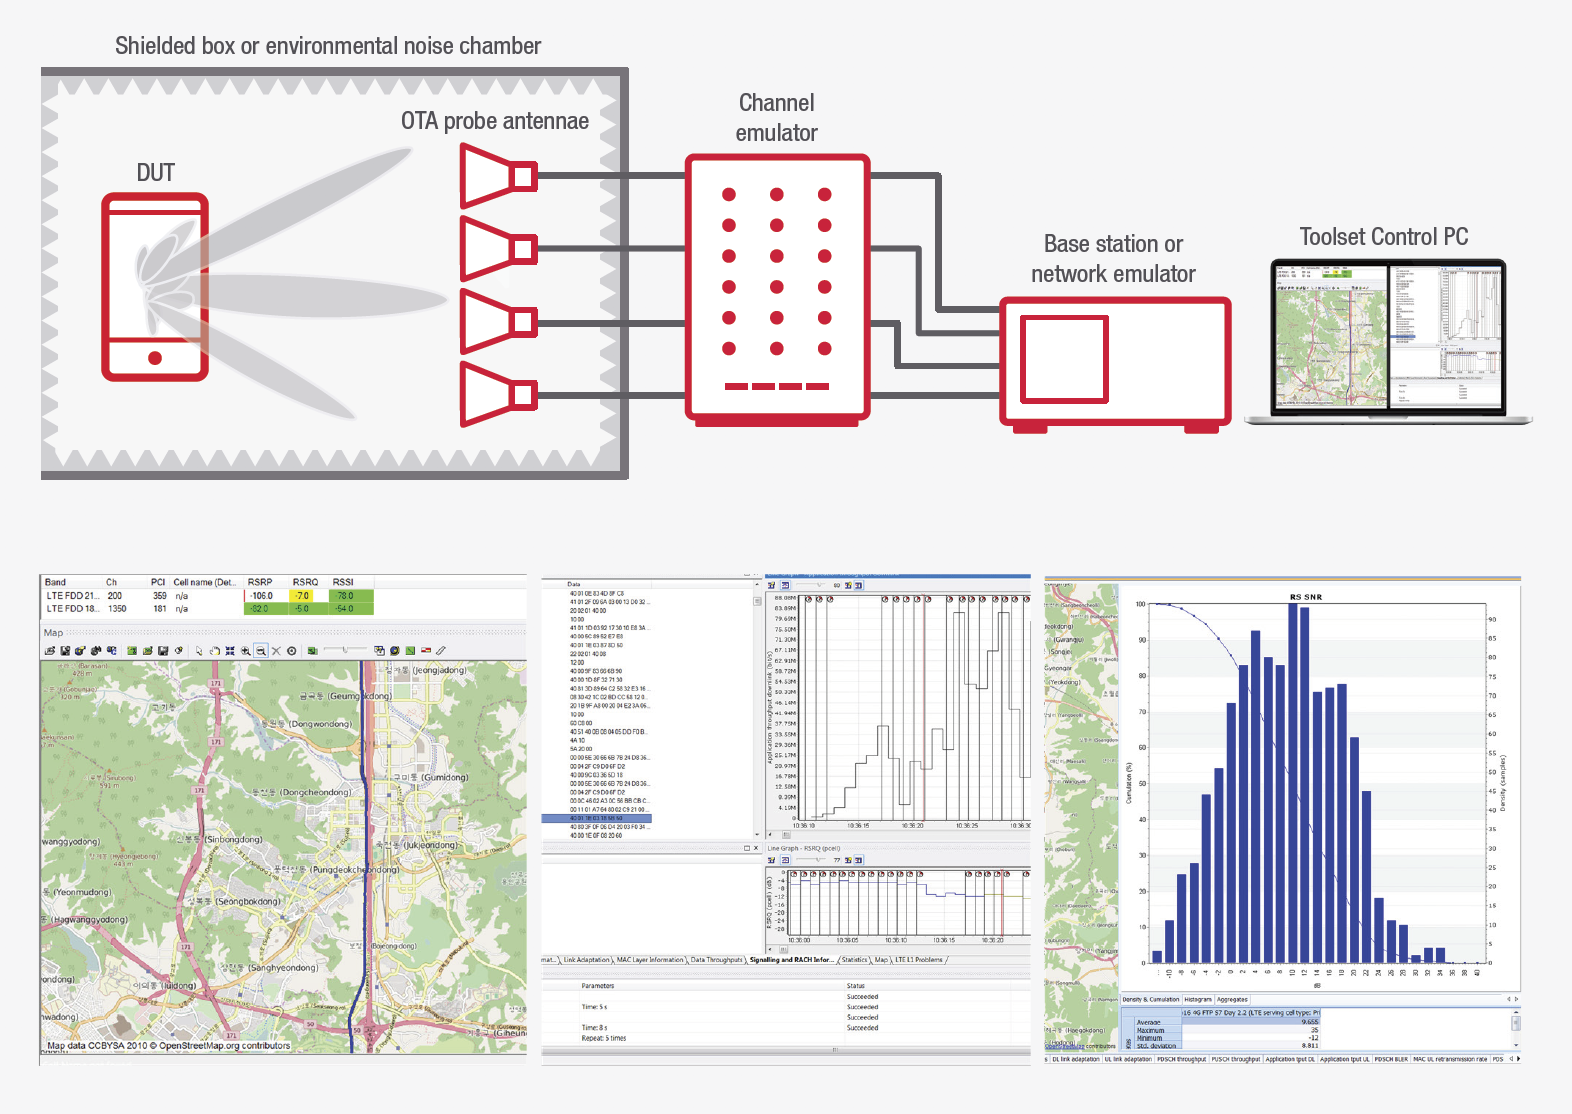 Figure 3. Use virtual drive test to assess true performance and interoperability of networks in the laboratory